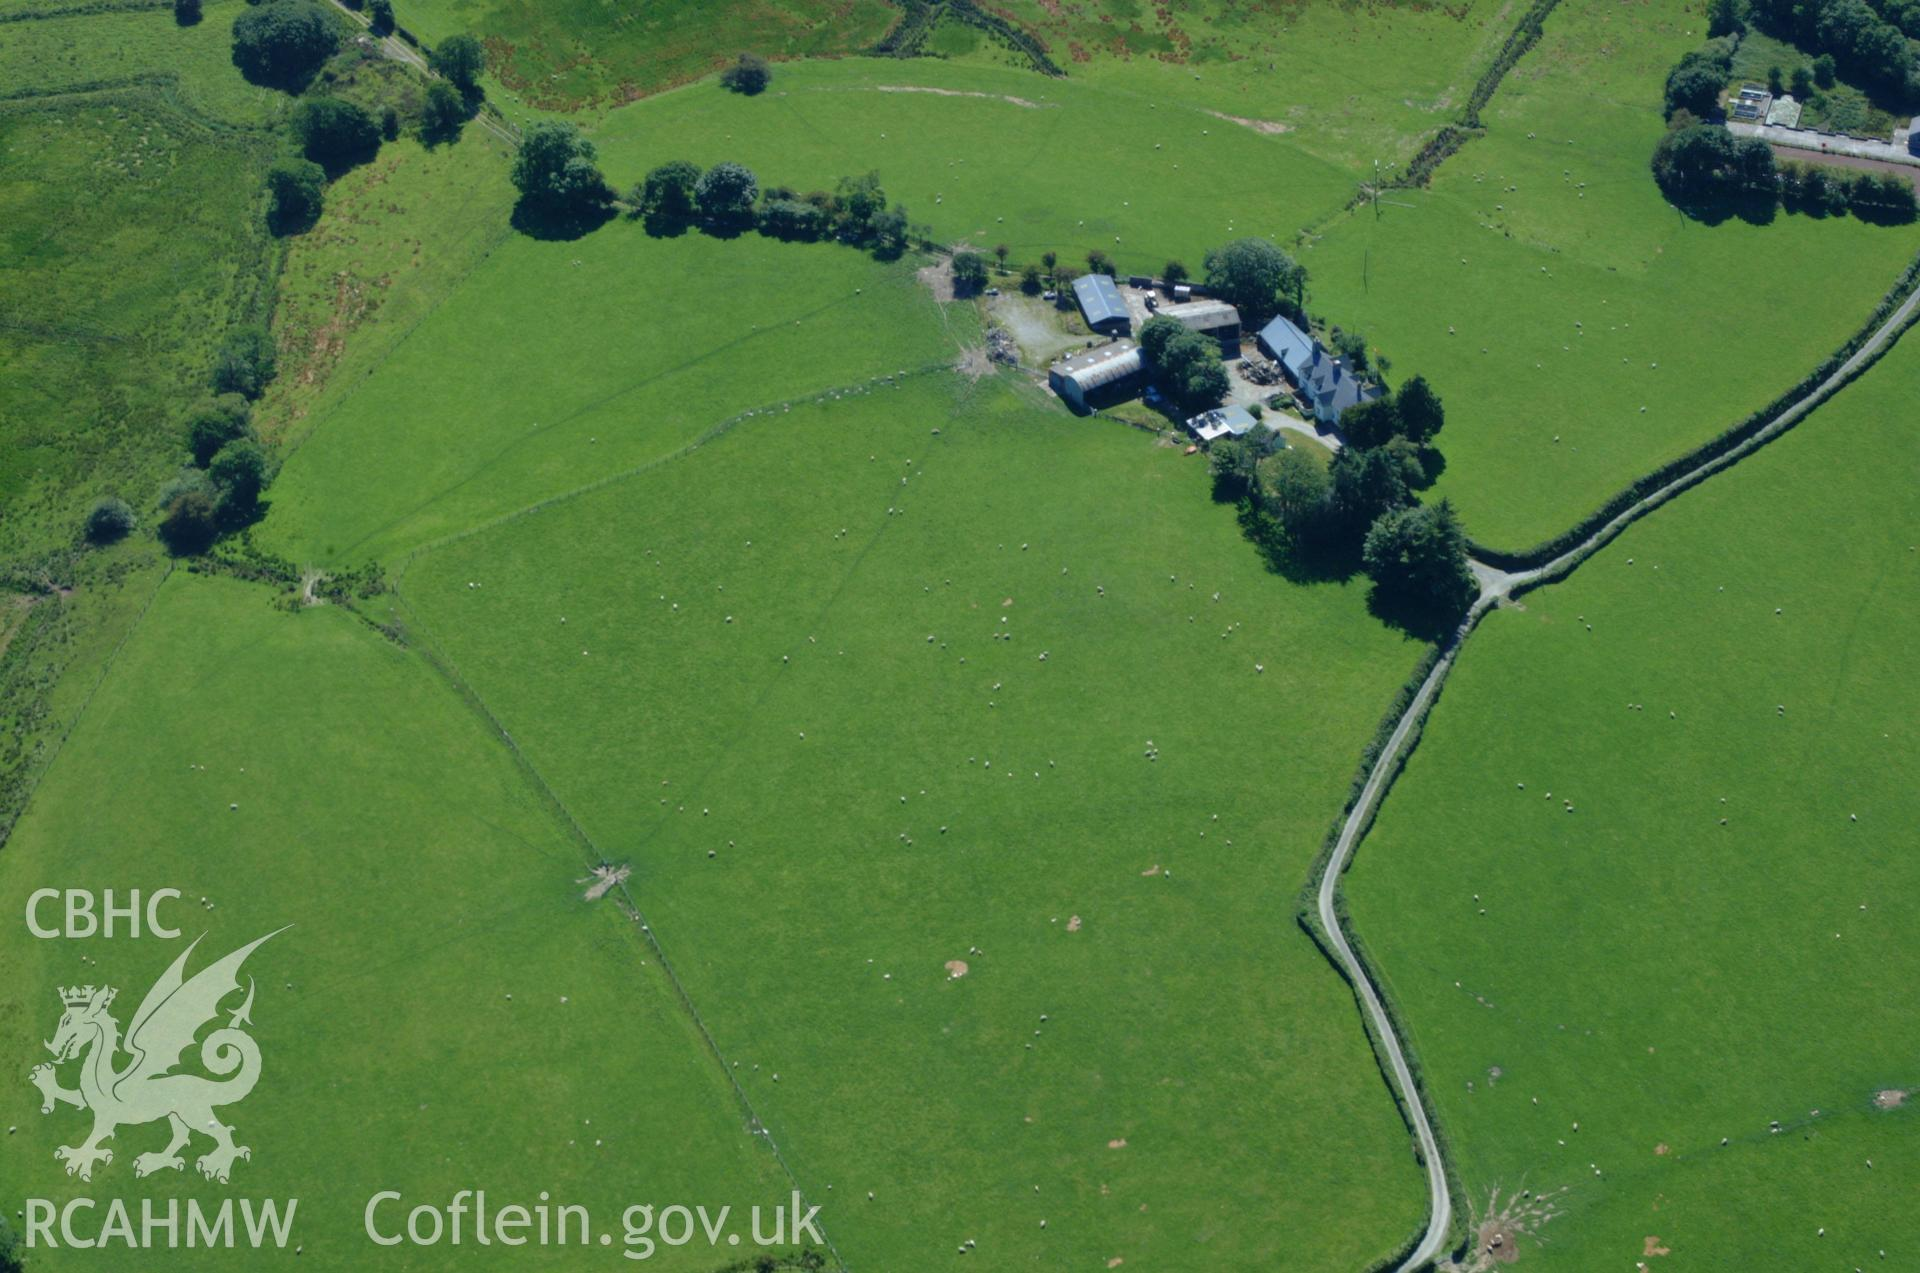 RCAHMW colour oblique aerial photograph of Cefn Gaer Roman military settlement taken on 14/06/2004 by Toby Driver